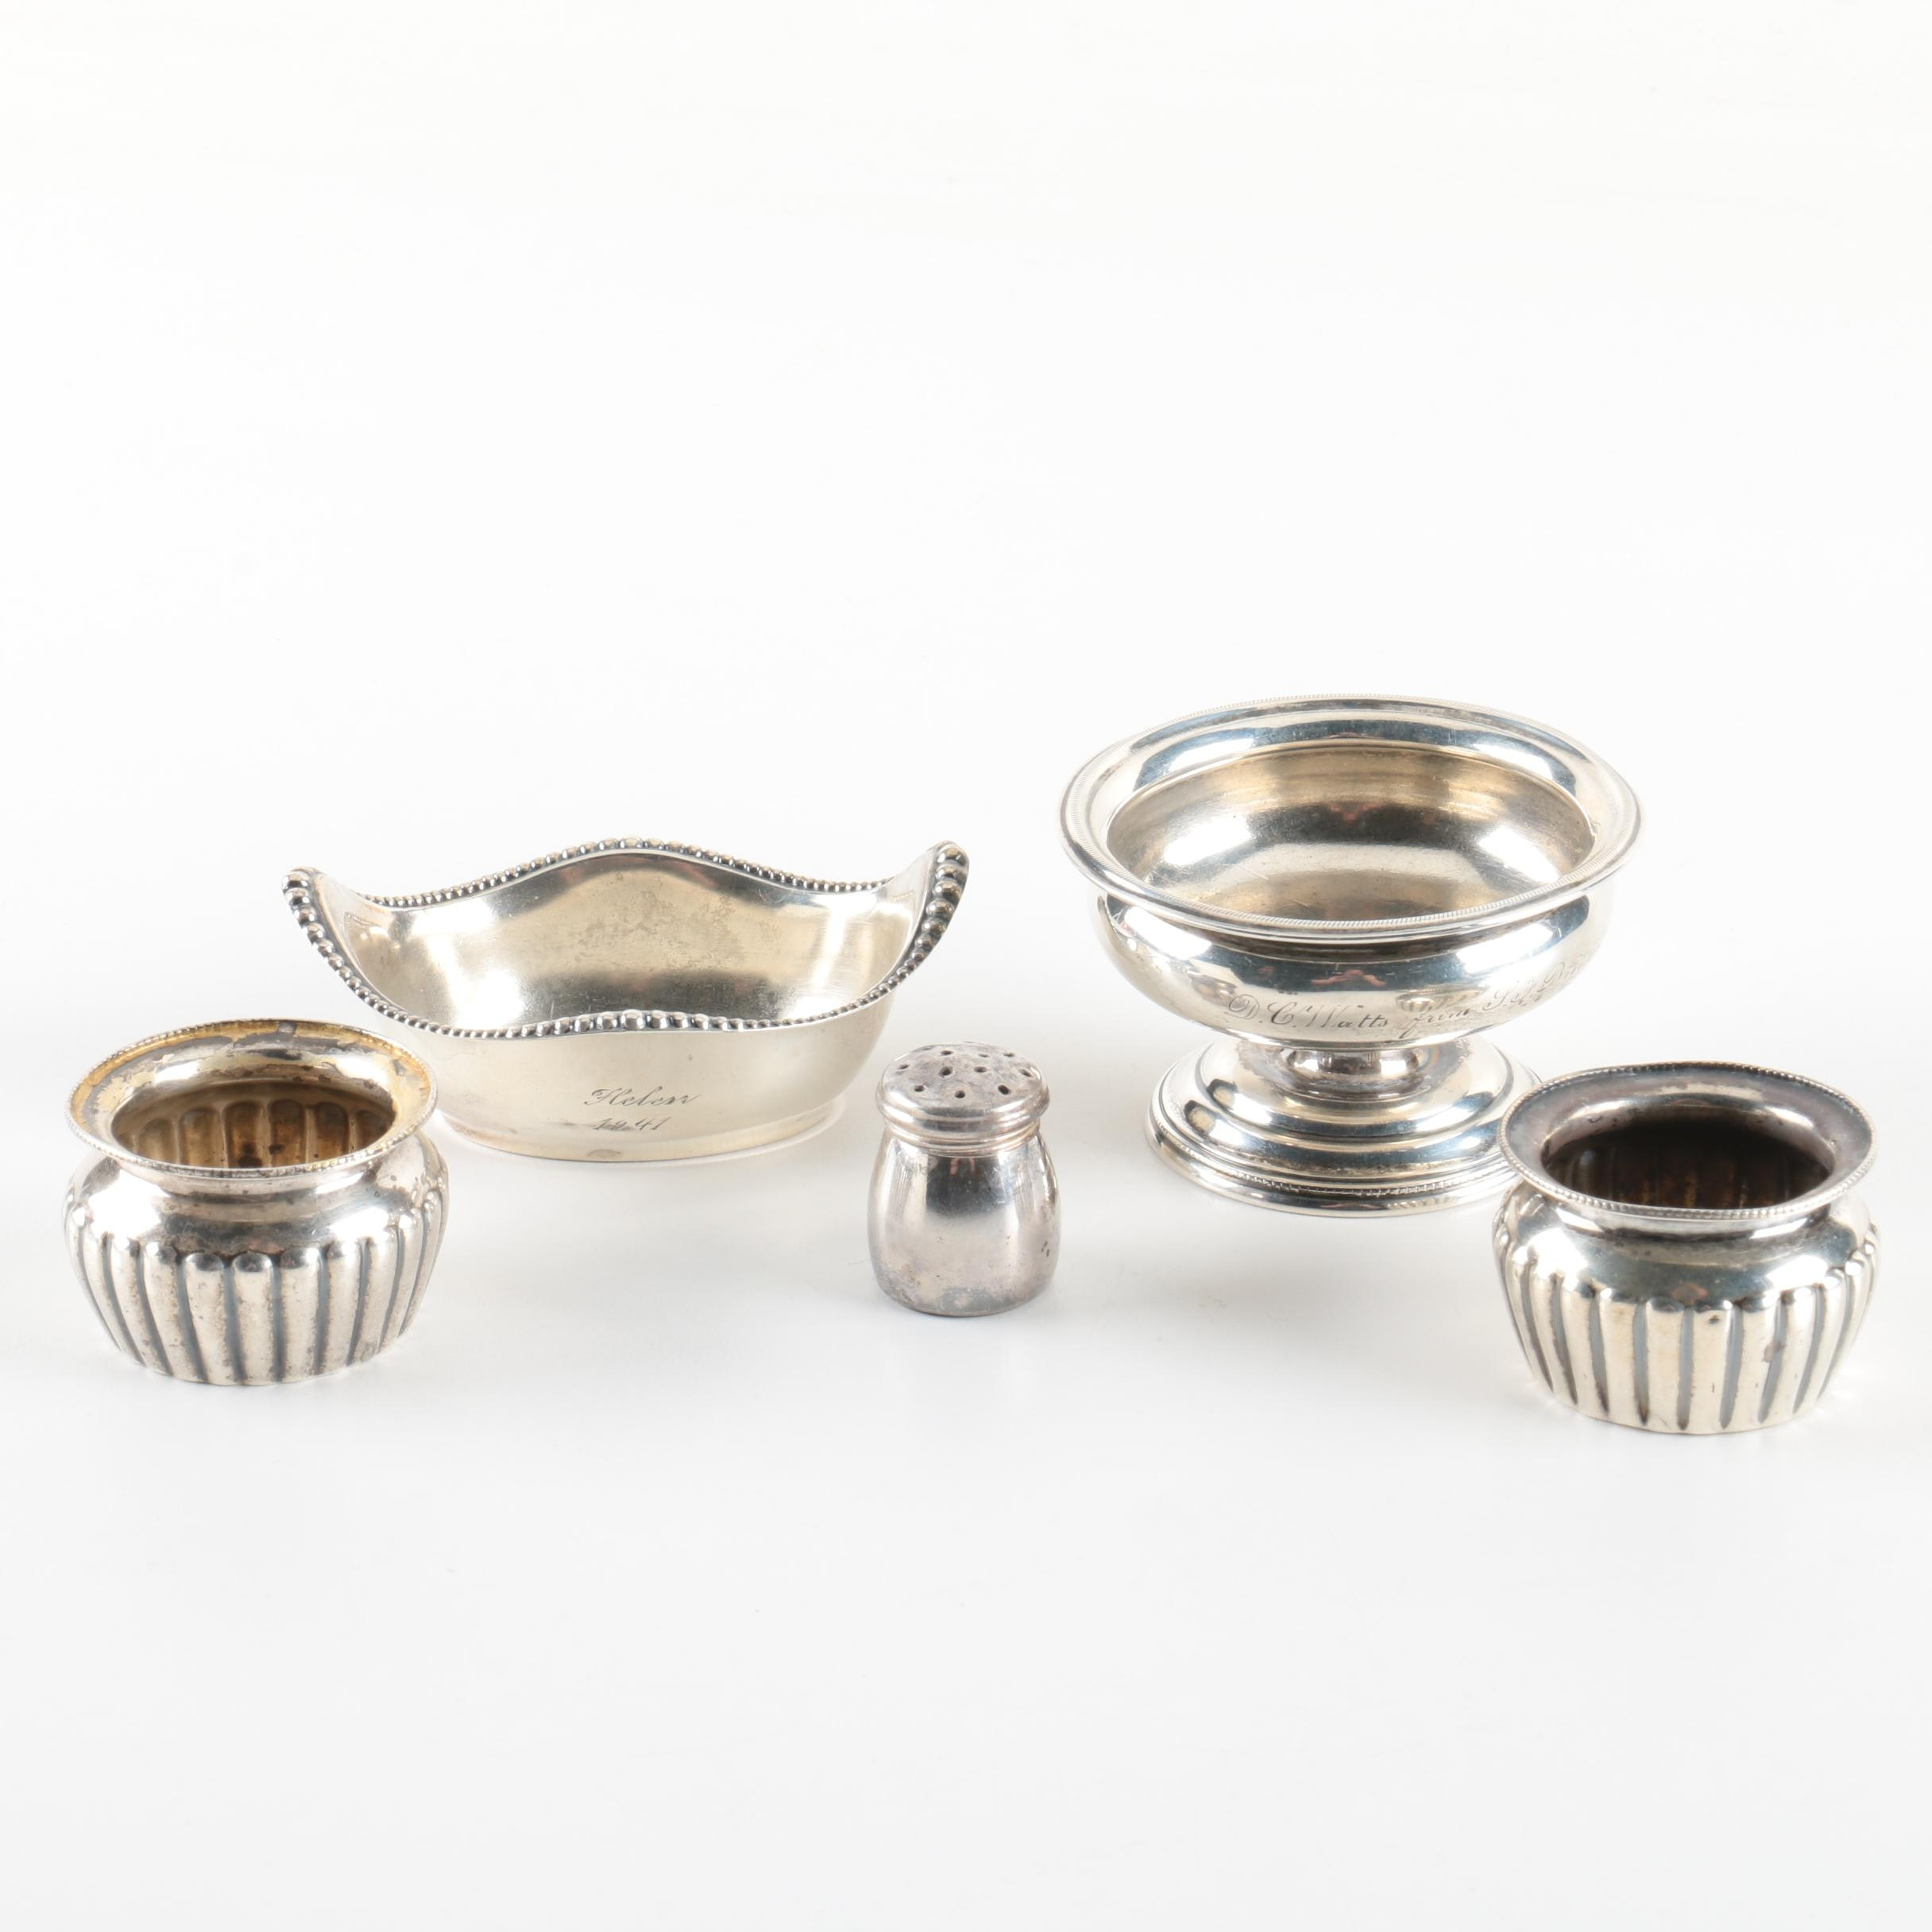 Gorham Sterling Silver Open Salt Cellars with Other Silver Tableware